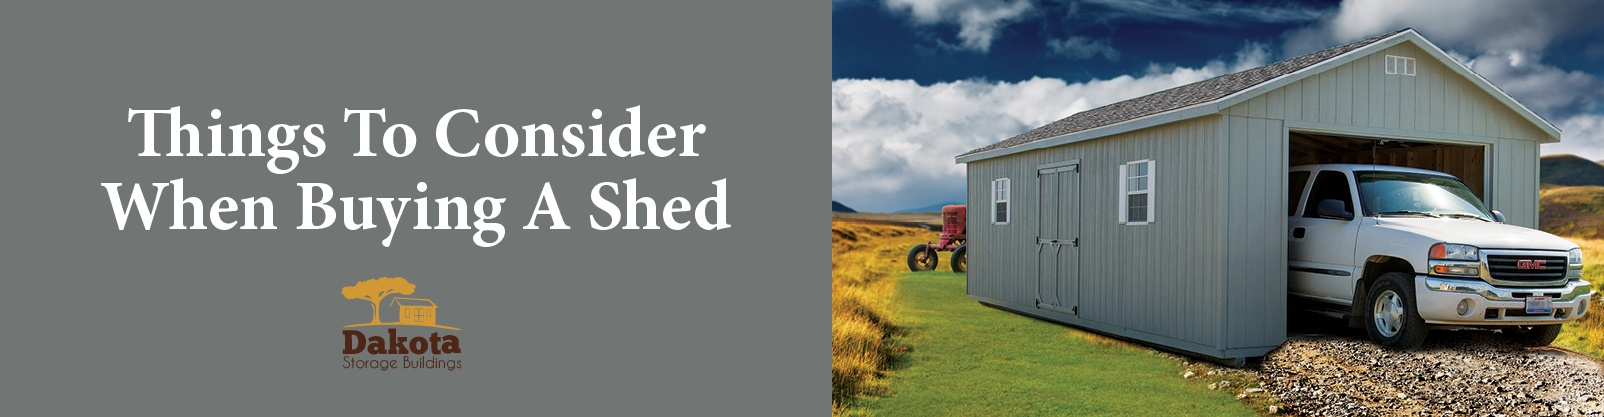 Things To Consider When Buying A Shed